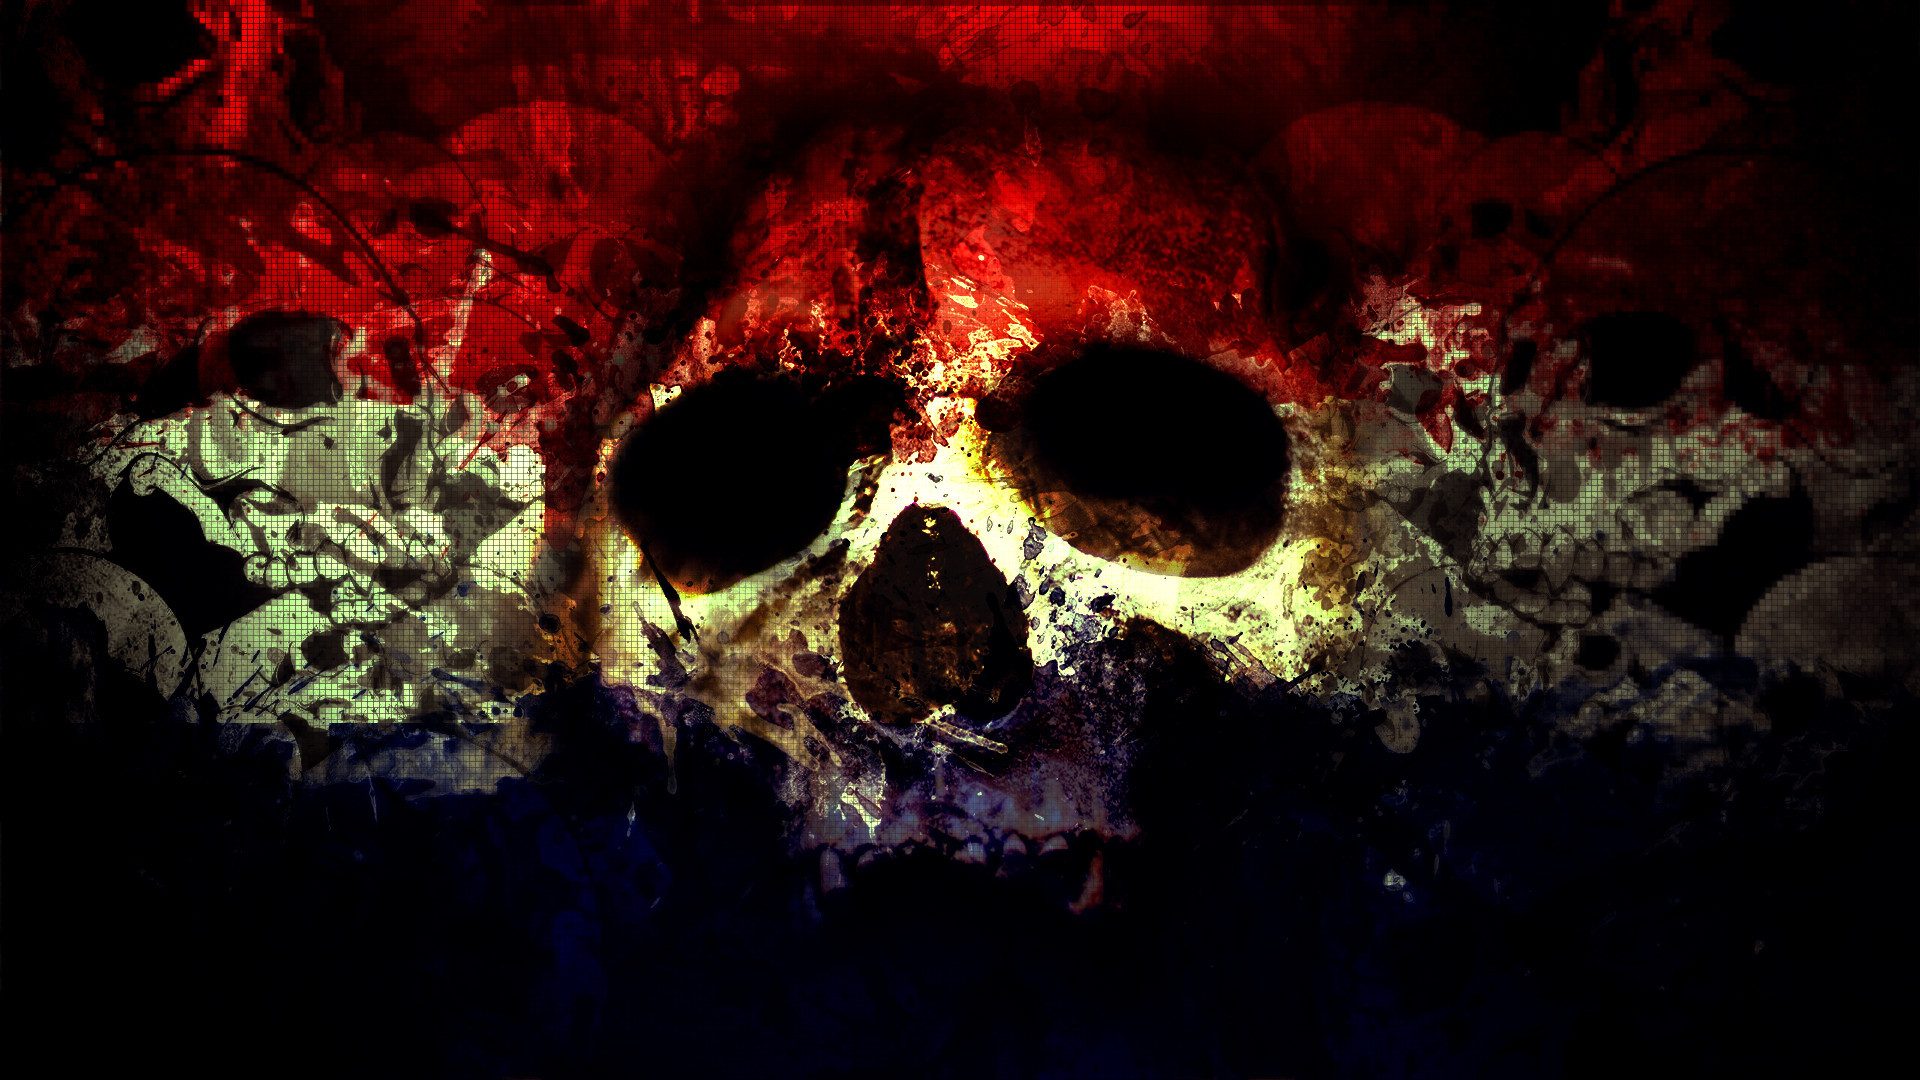 1920x1080 0 1600x1000 Skull Wallpaper Hd Collection  Skull Wallpaper Hd  Collection